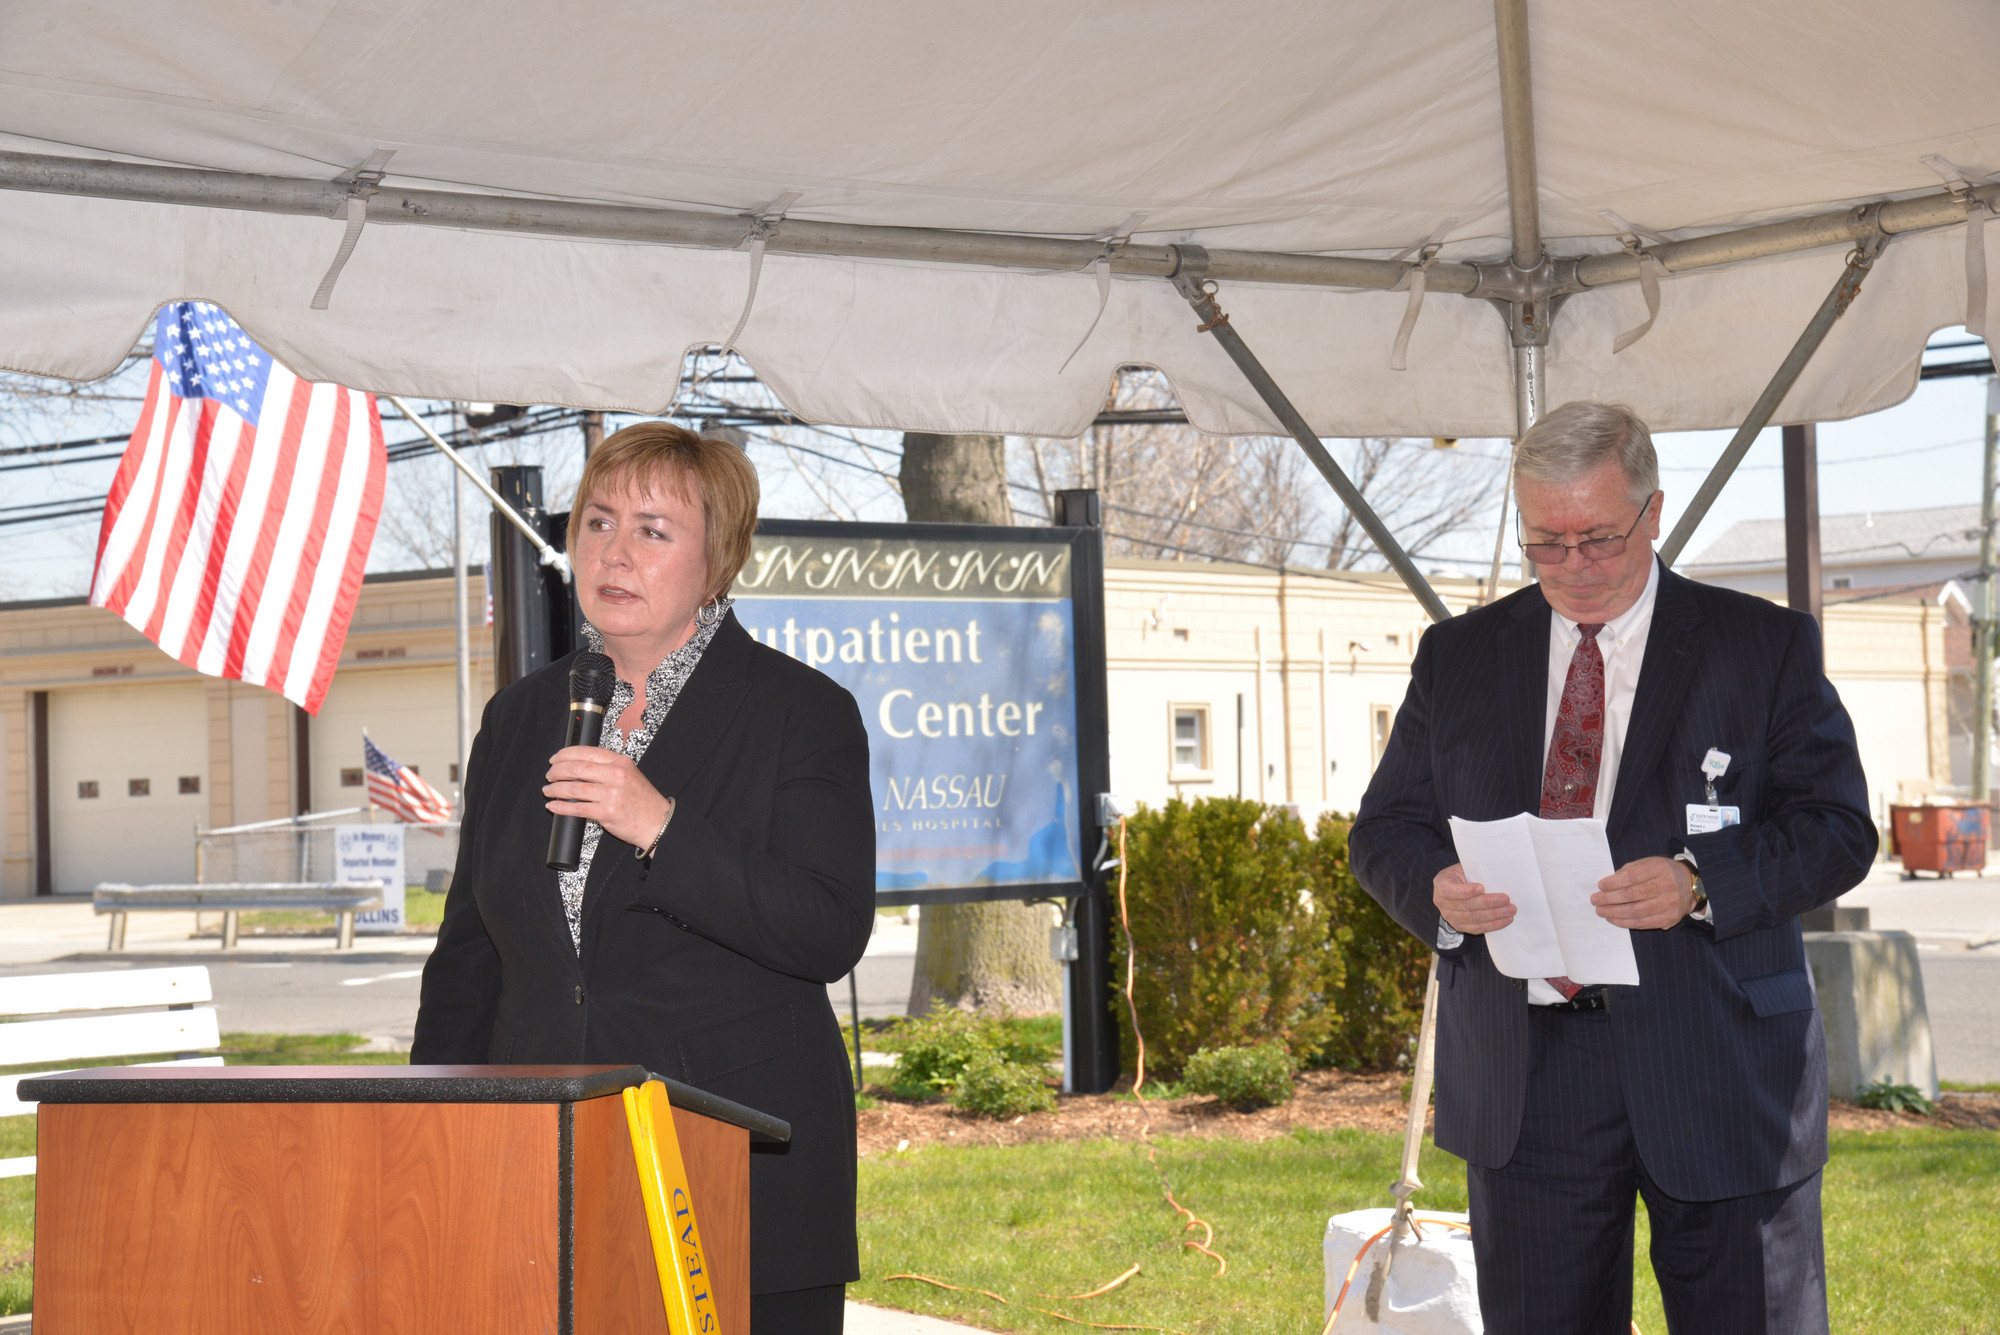 Town of Hempstead Supervisor Kate Murray spoke at the ribbon-cutting. At right was Richard Murphy, the hospital�s CEO.